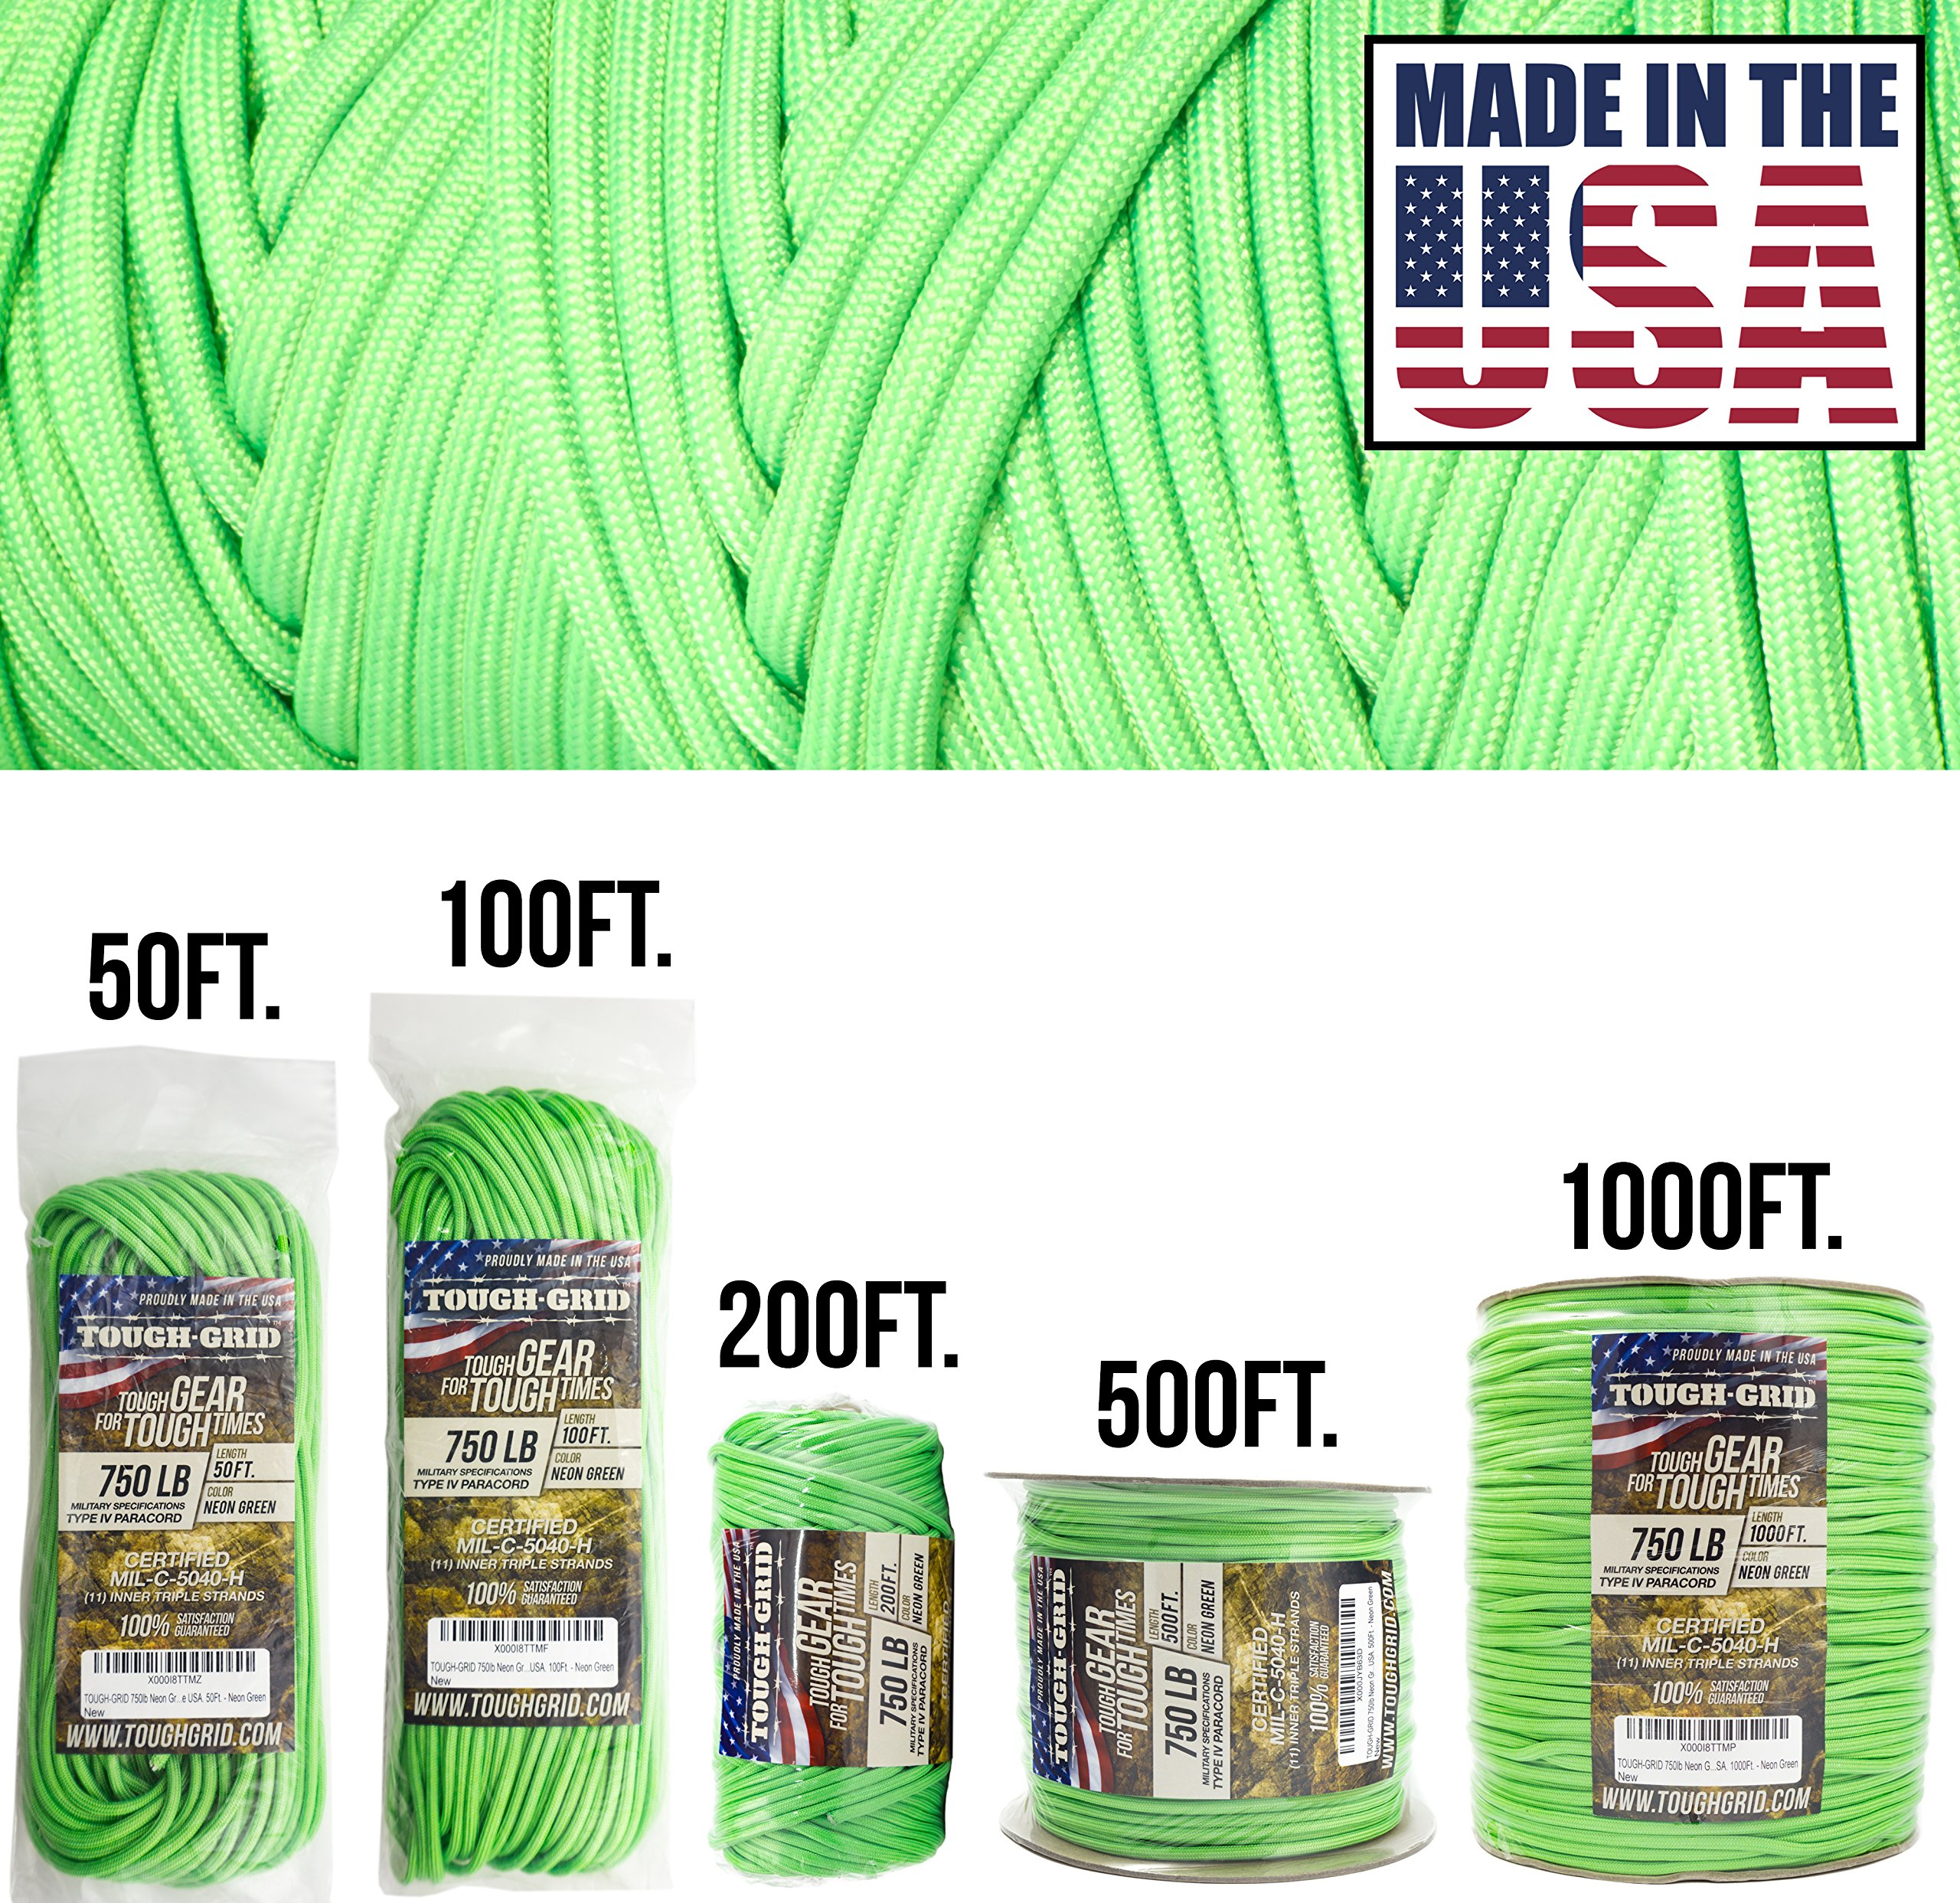 TOUGH-GRID 750lb Neon Green Paracord/Parachute Cord - Genuine Mil Spec Type IV 750lb Paracord Used by The US Military (MIl-C-5040-H) - 100% Nylon - Made in The USA. 100Ft. - Neon Green by TOUGH-GRID